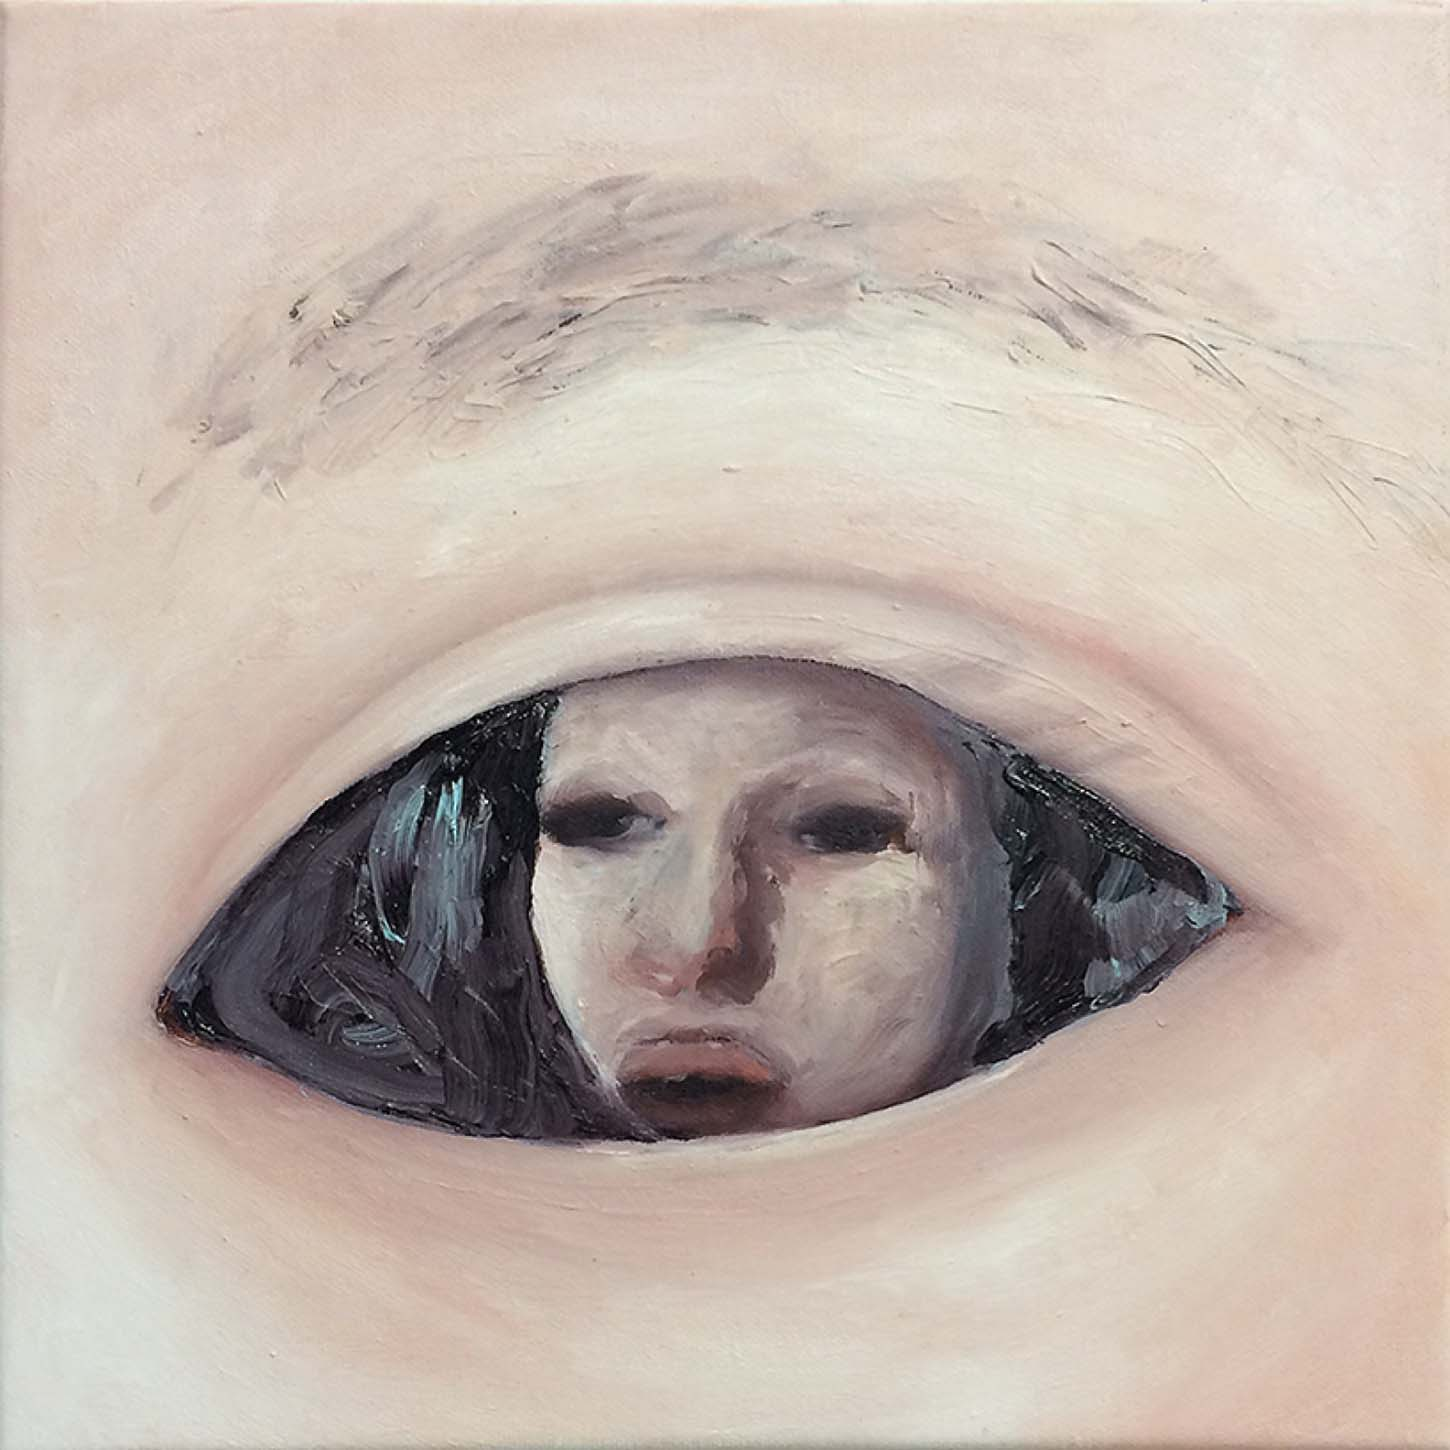 Emelie Theander,Inside Out, 2016oil on canvas, 30 x 30 cm